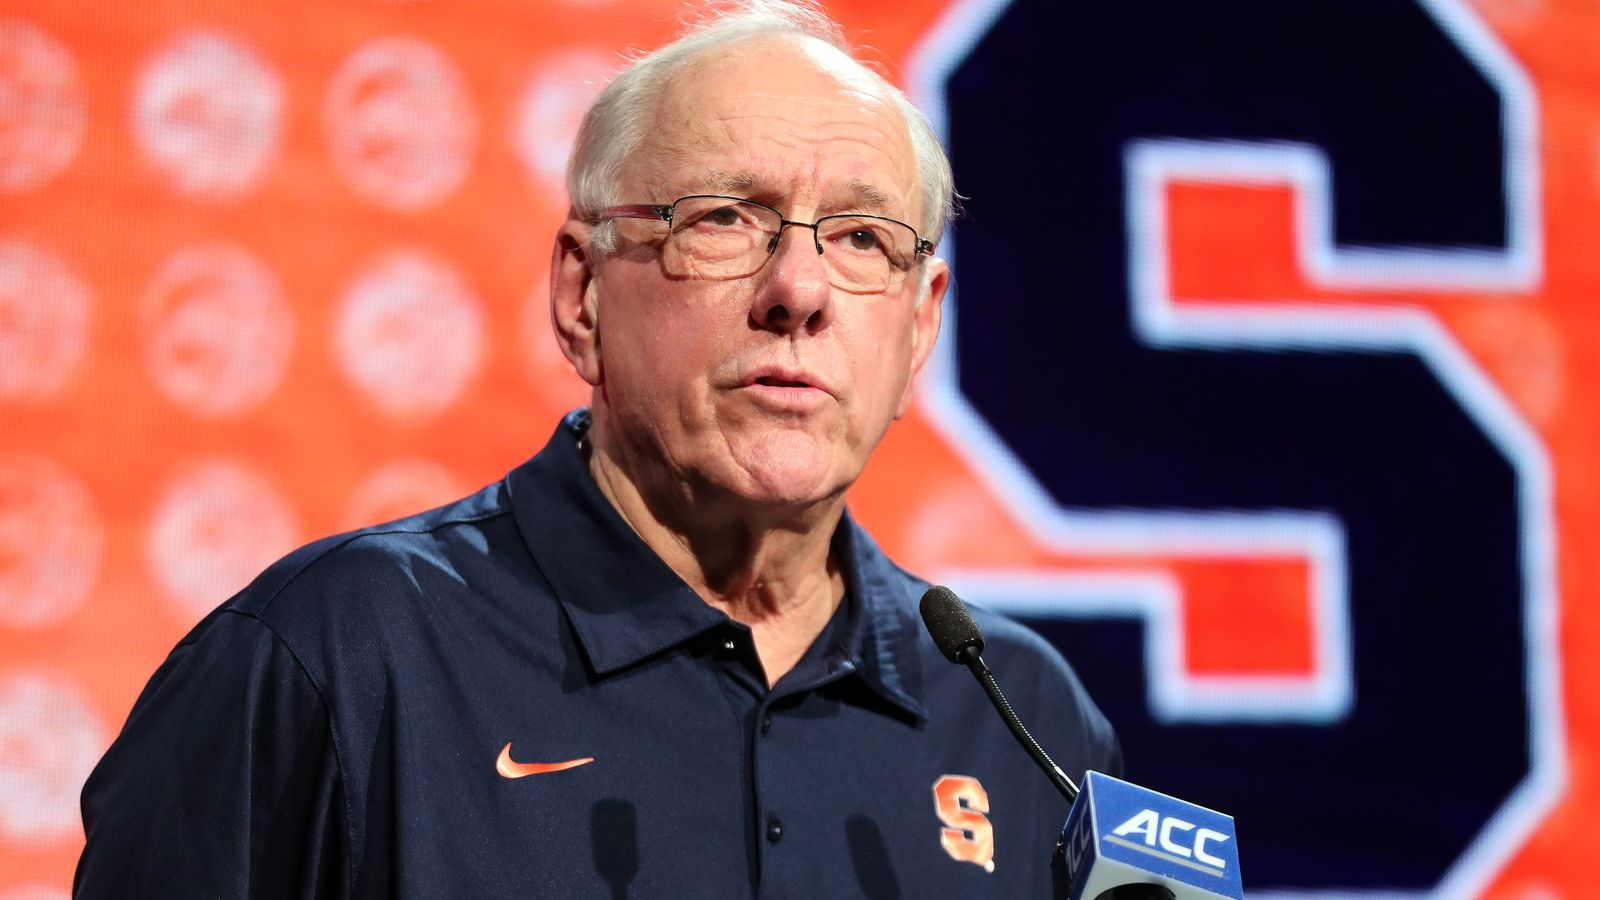 Syracuse athletics took home $22.8 million from ACC in 2015-16 - Troy Nunes Is An Absolute Magician